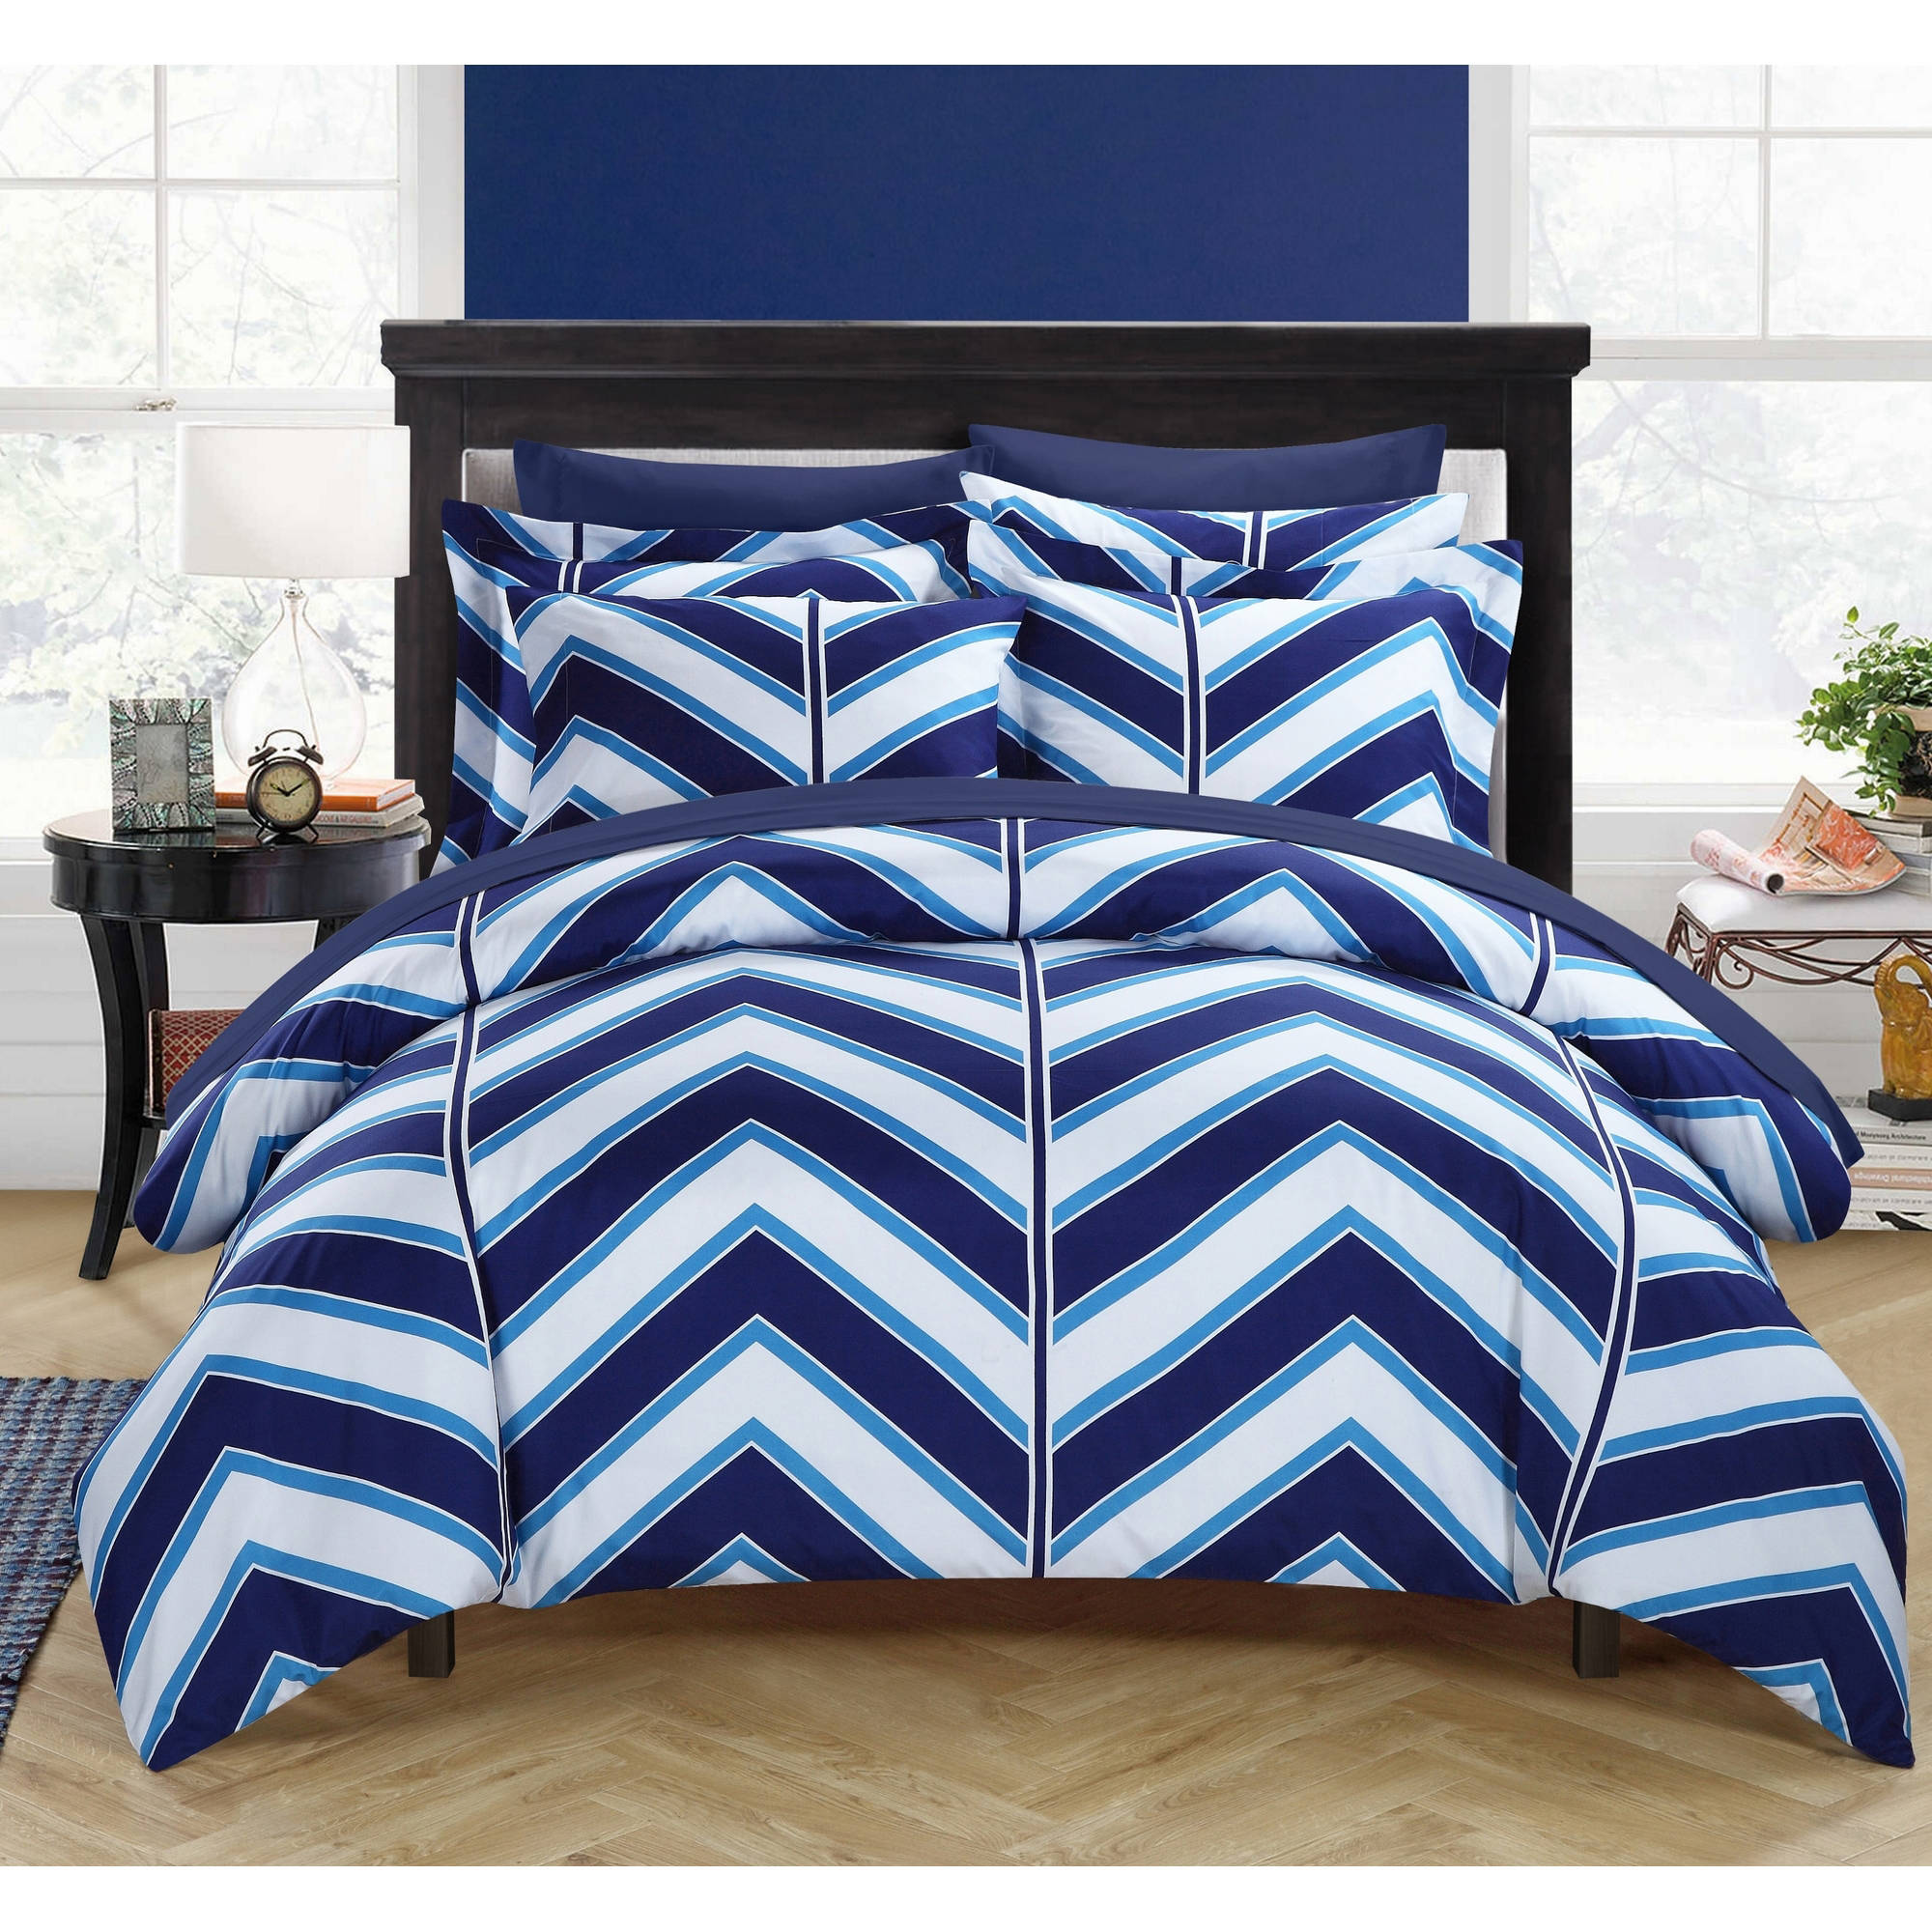 Dallas 9-Piece Bedding Duvet Cover Set